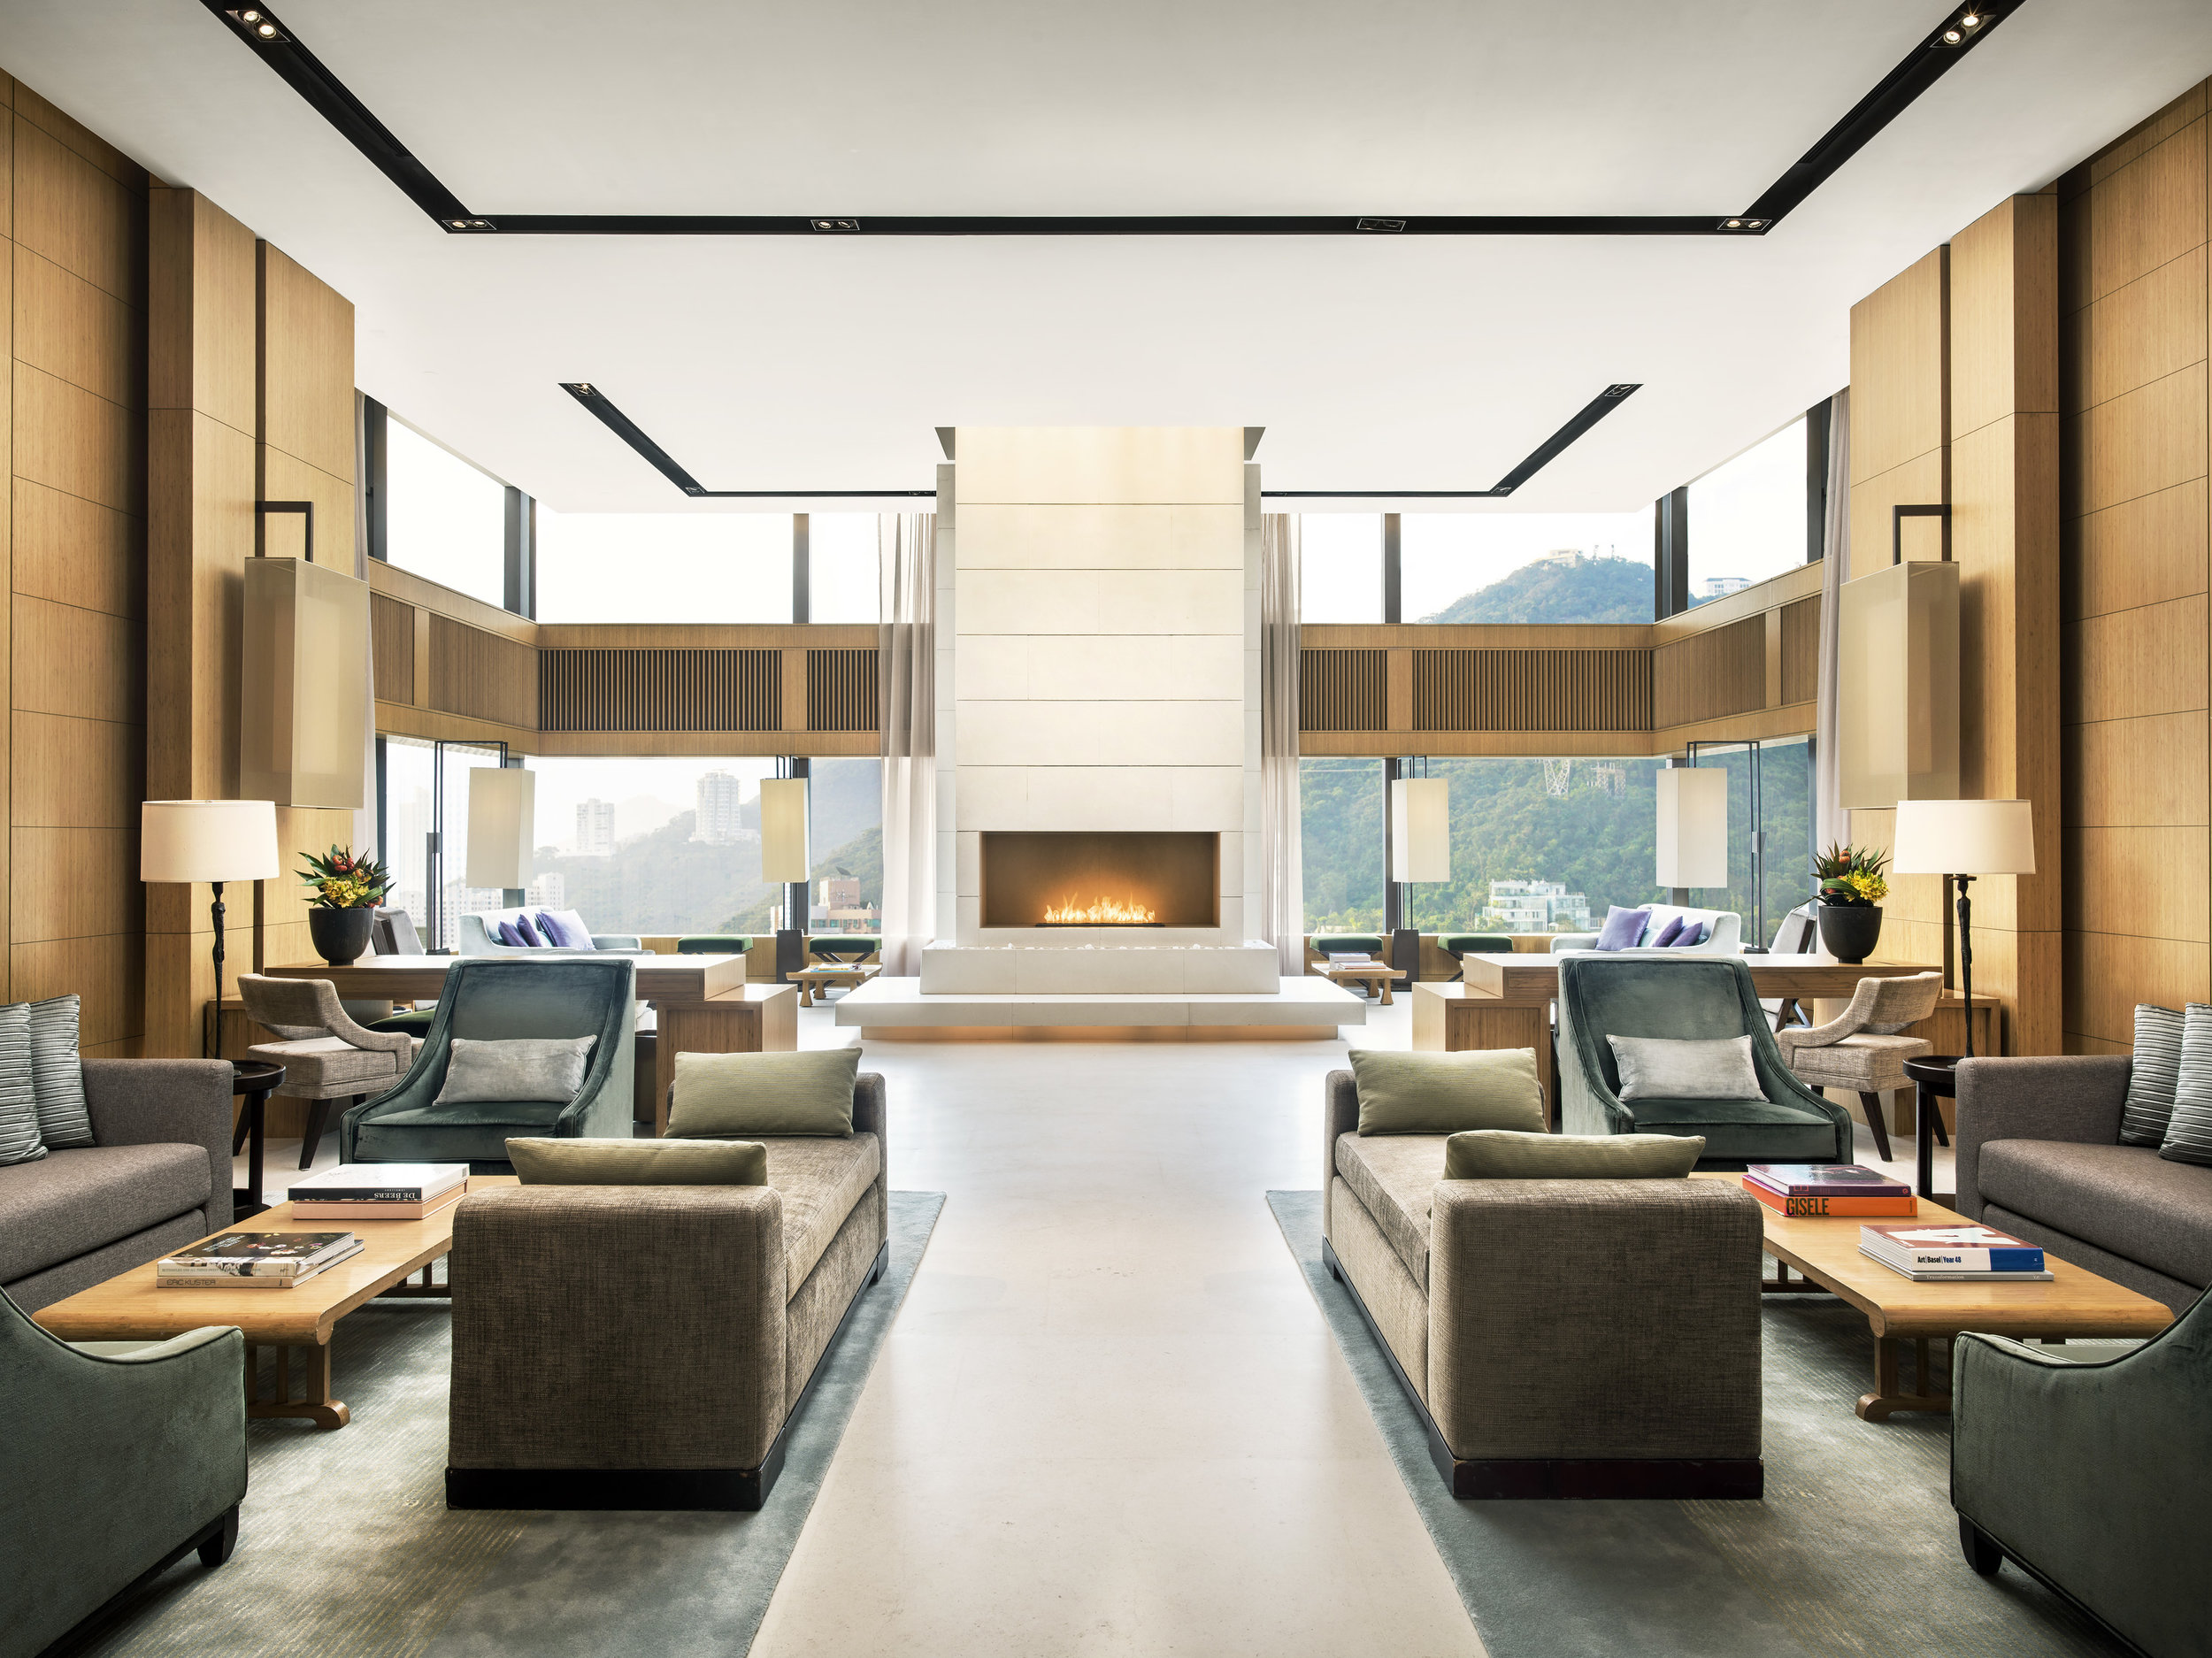 HSNY's Traveling Education courses will take place in The Upper House's Sky Lounge, a sophisticated, airy space on the 49th floor with views of green hillsides and eastern Hong Kong. Photo courtesy of The Upper House.